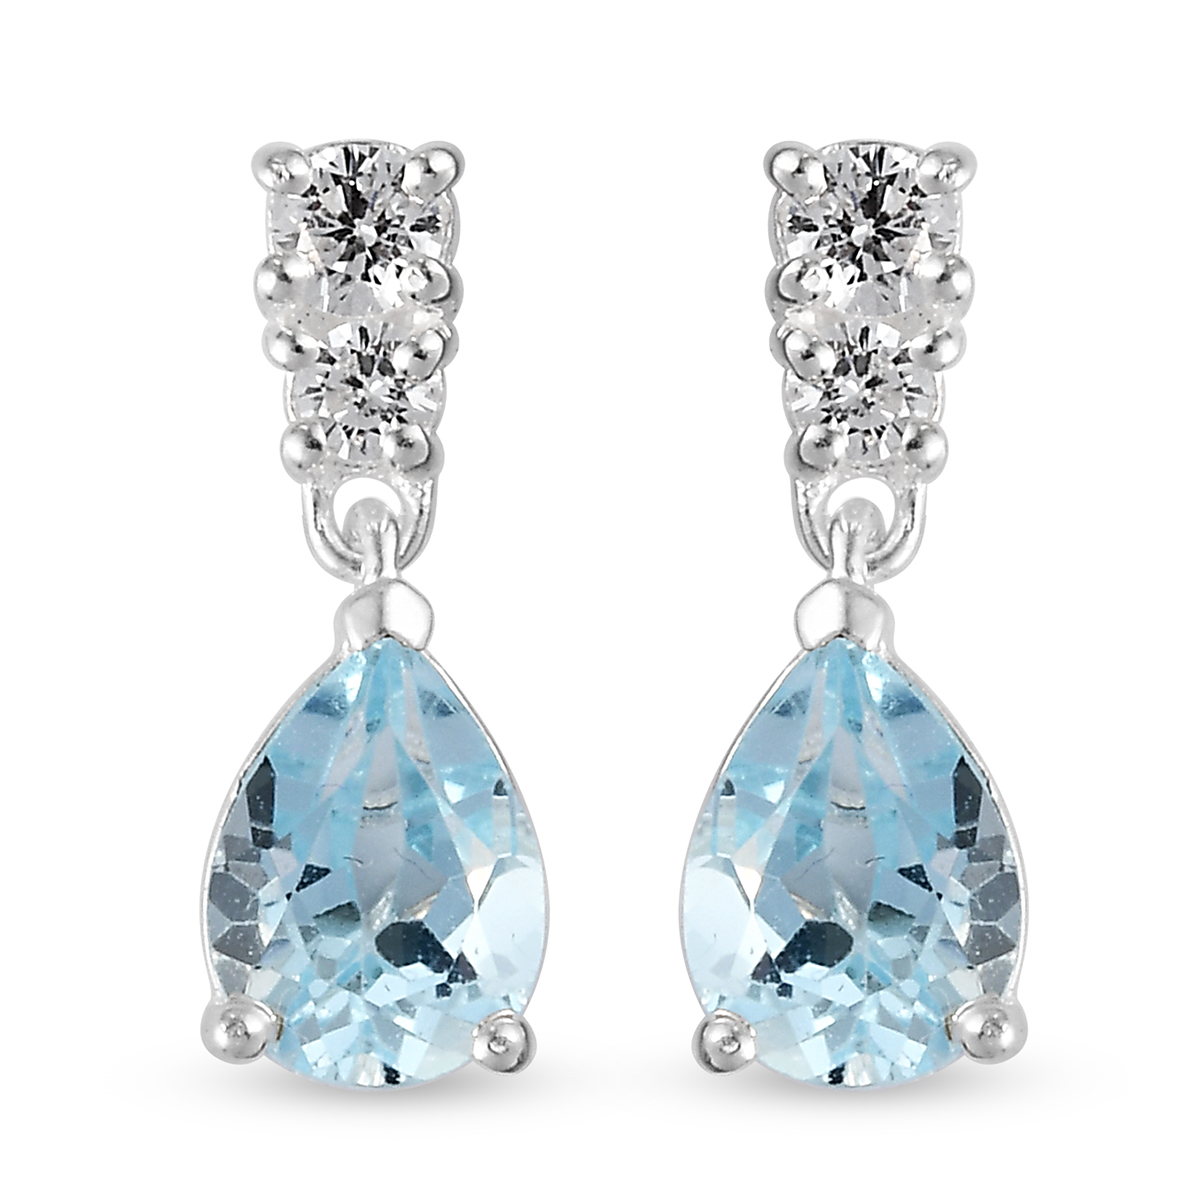 9433a1c6a Details about CZ Dangle Drop Earrings for Women Pear Topaz Cubic Zirconia  925 Sterling Silver